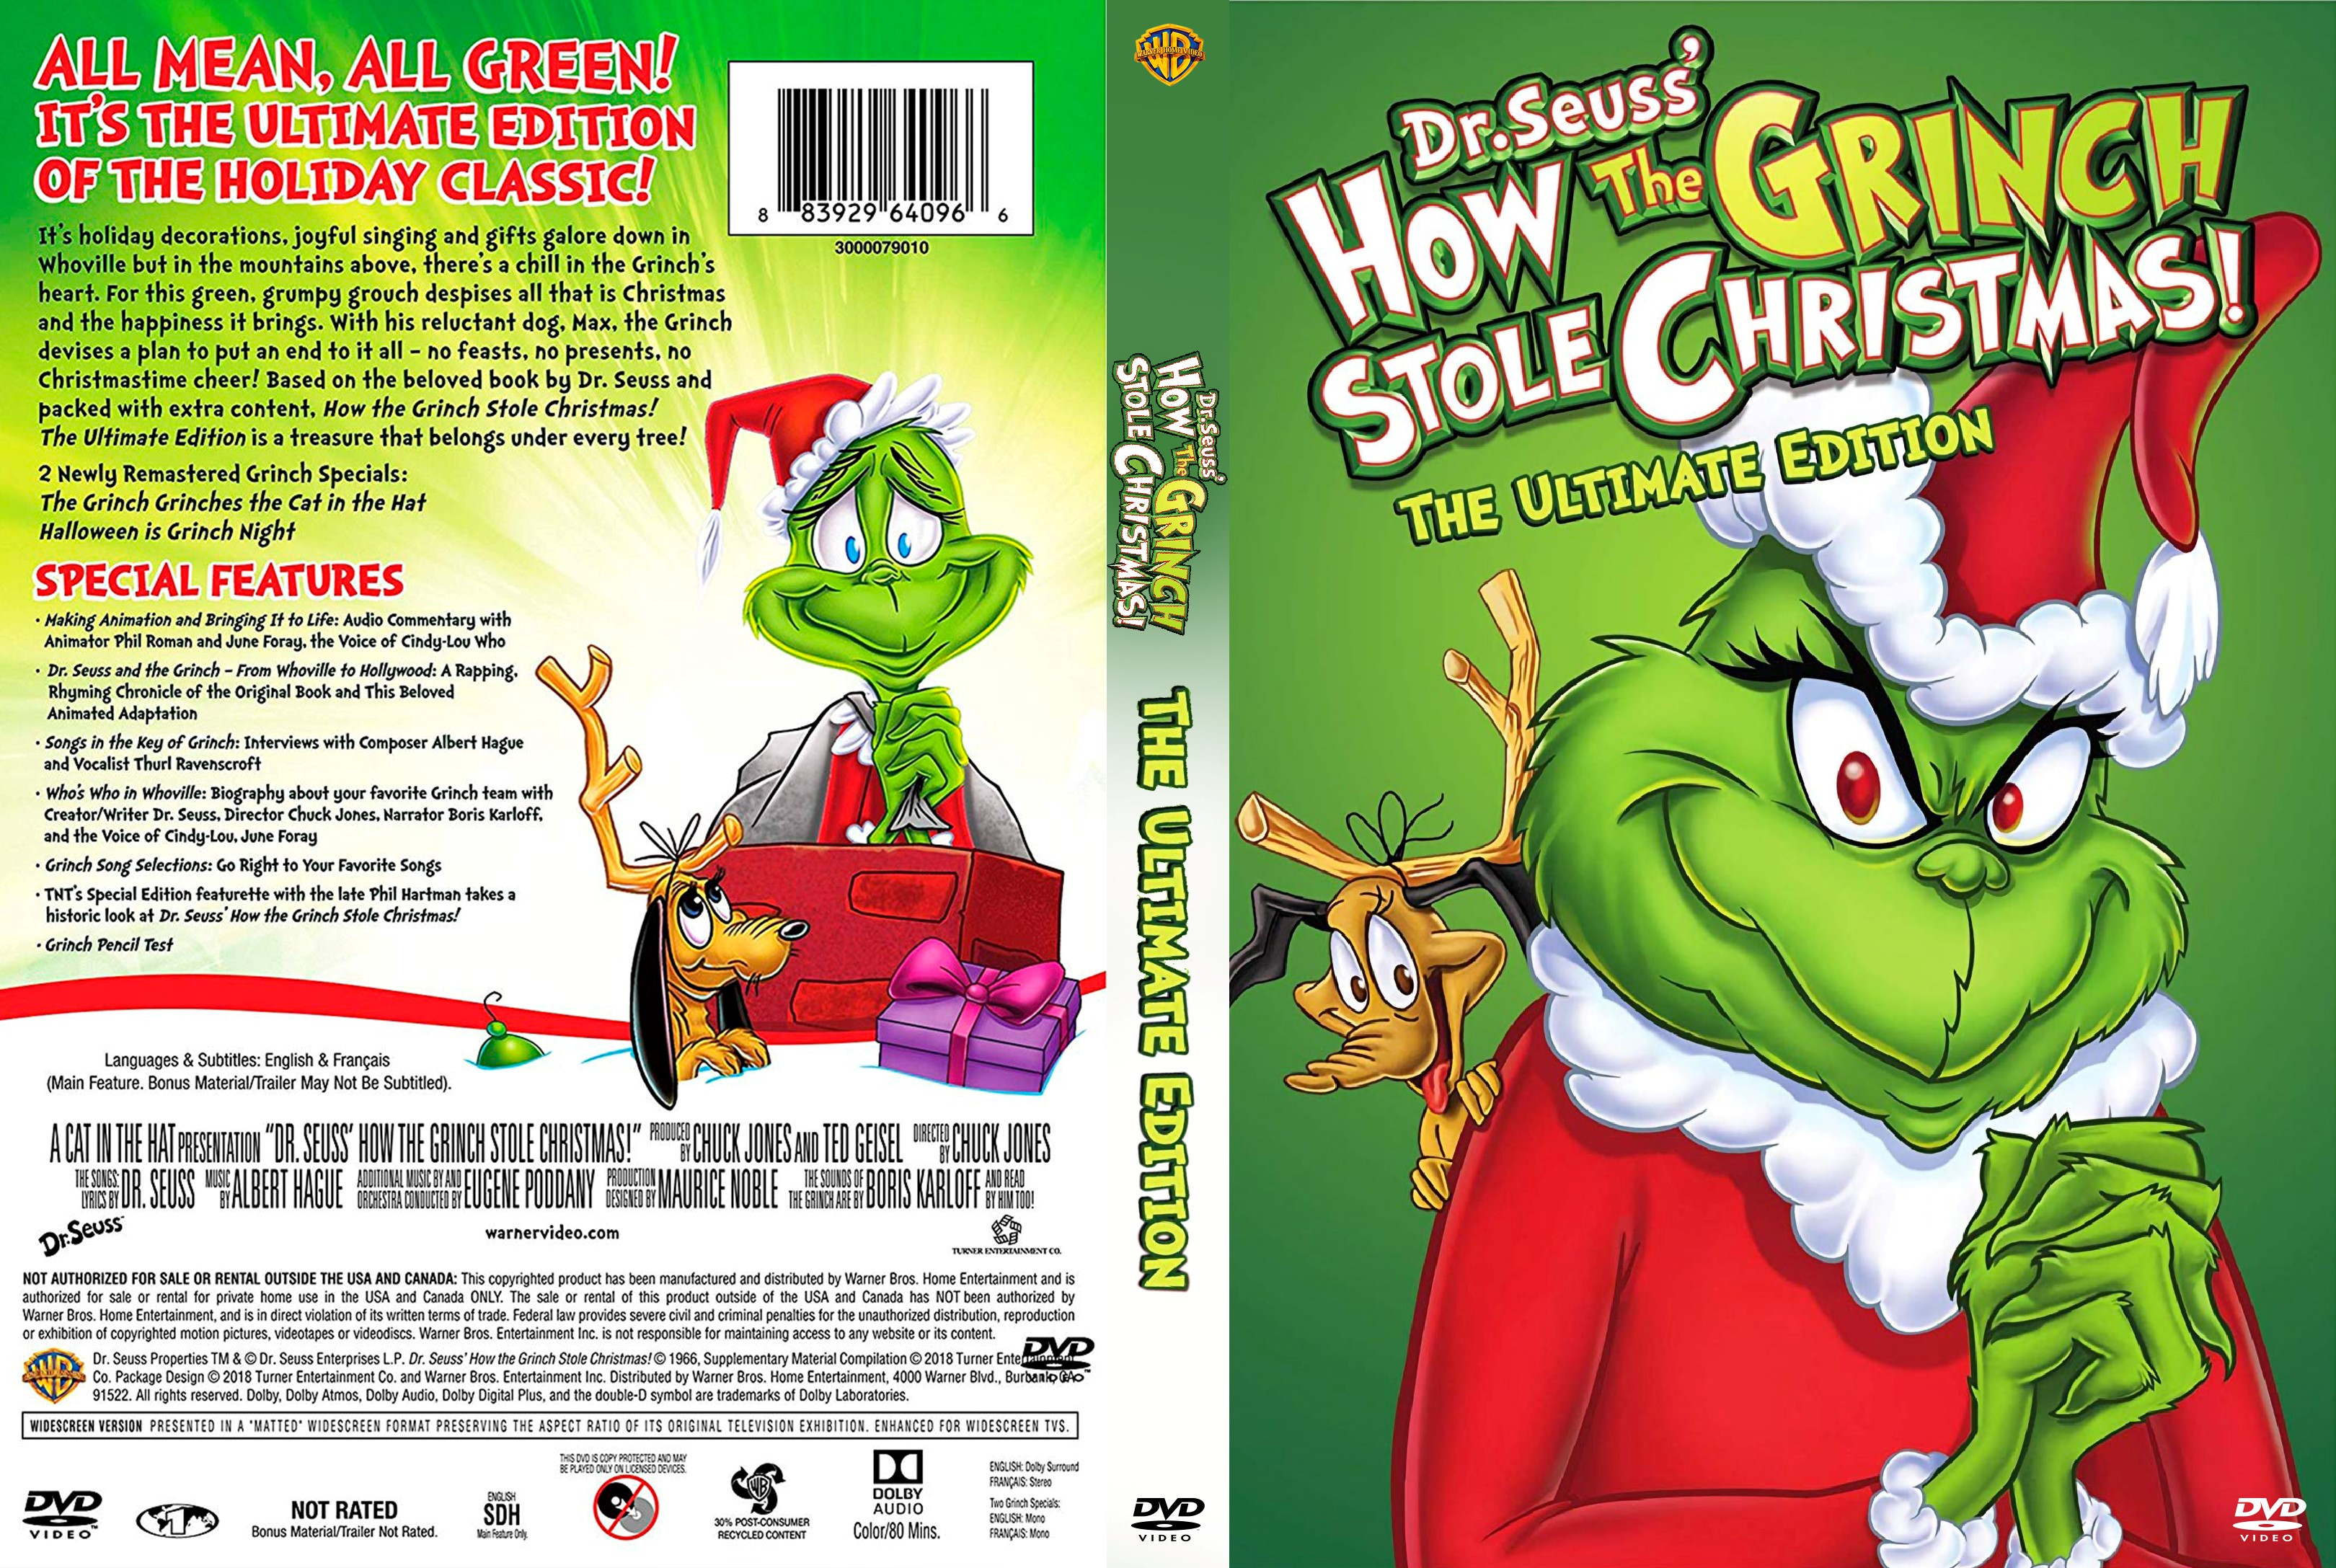 How The Grinch Stole Christmas 2020 Dvd Cover How the Grinch Stole Christmas Ultimate Edition DVD Cover | Cover